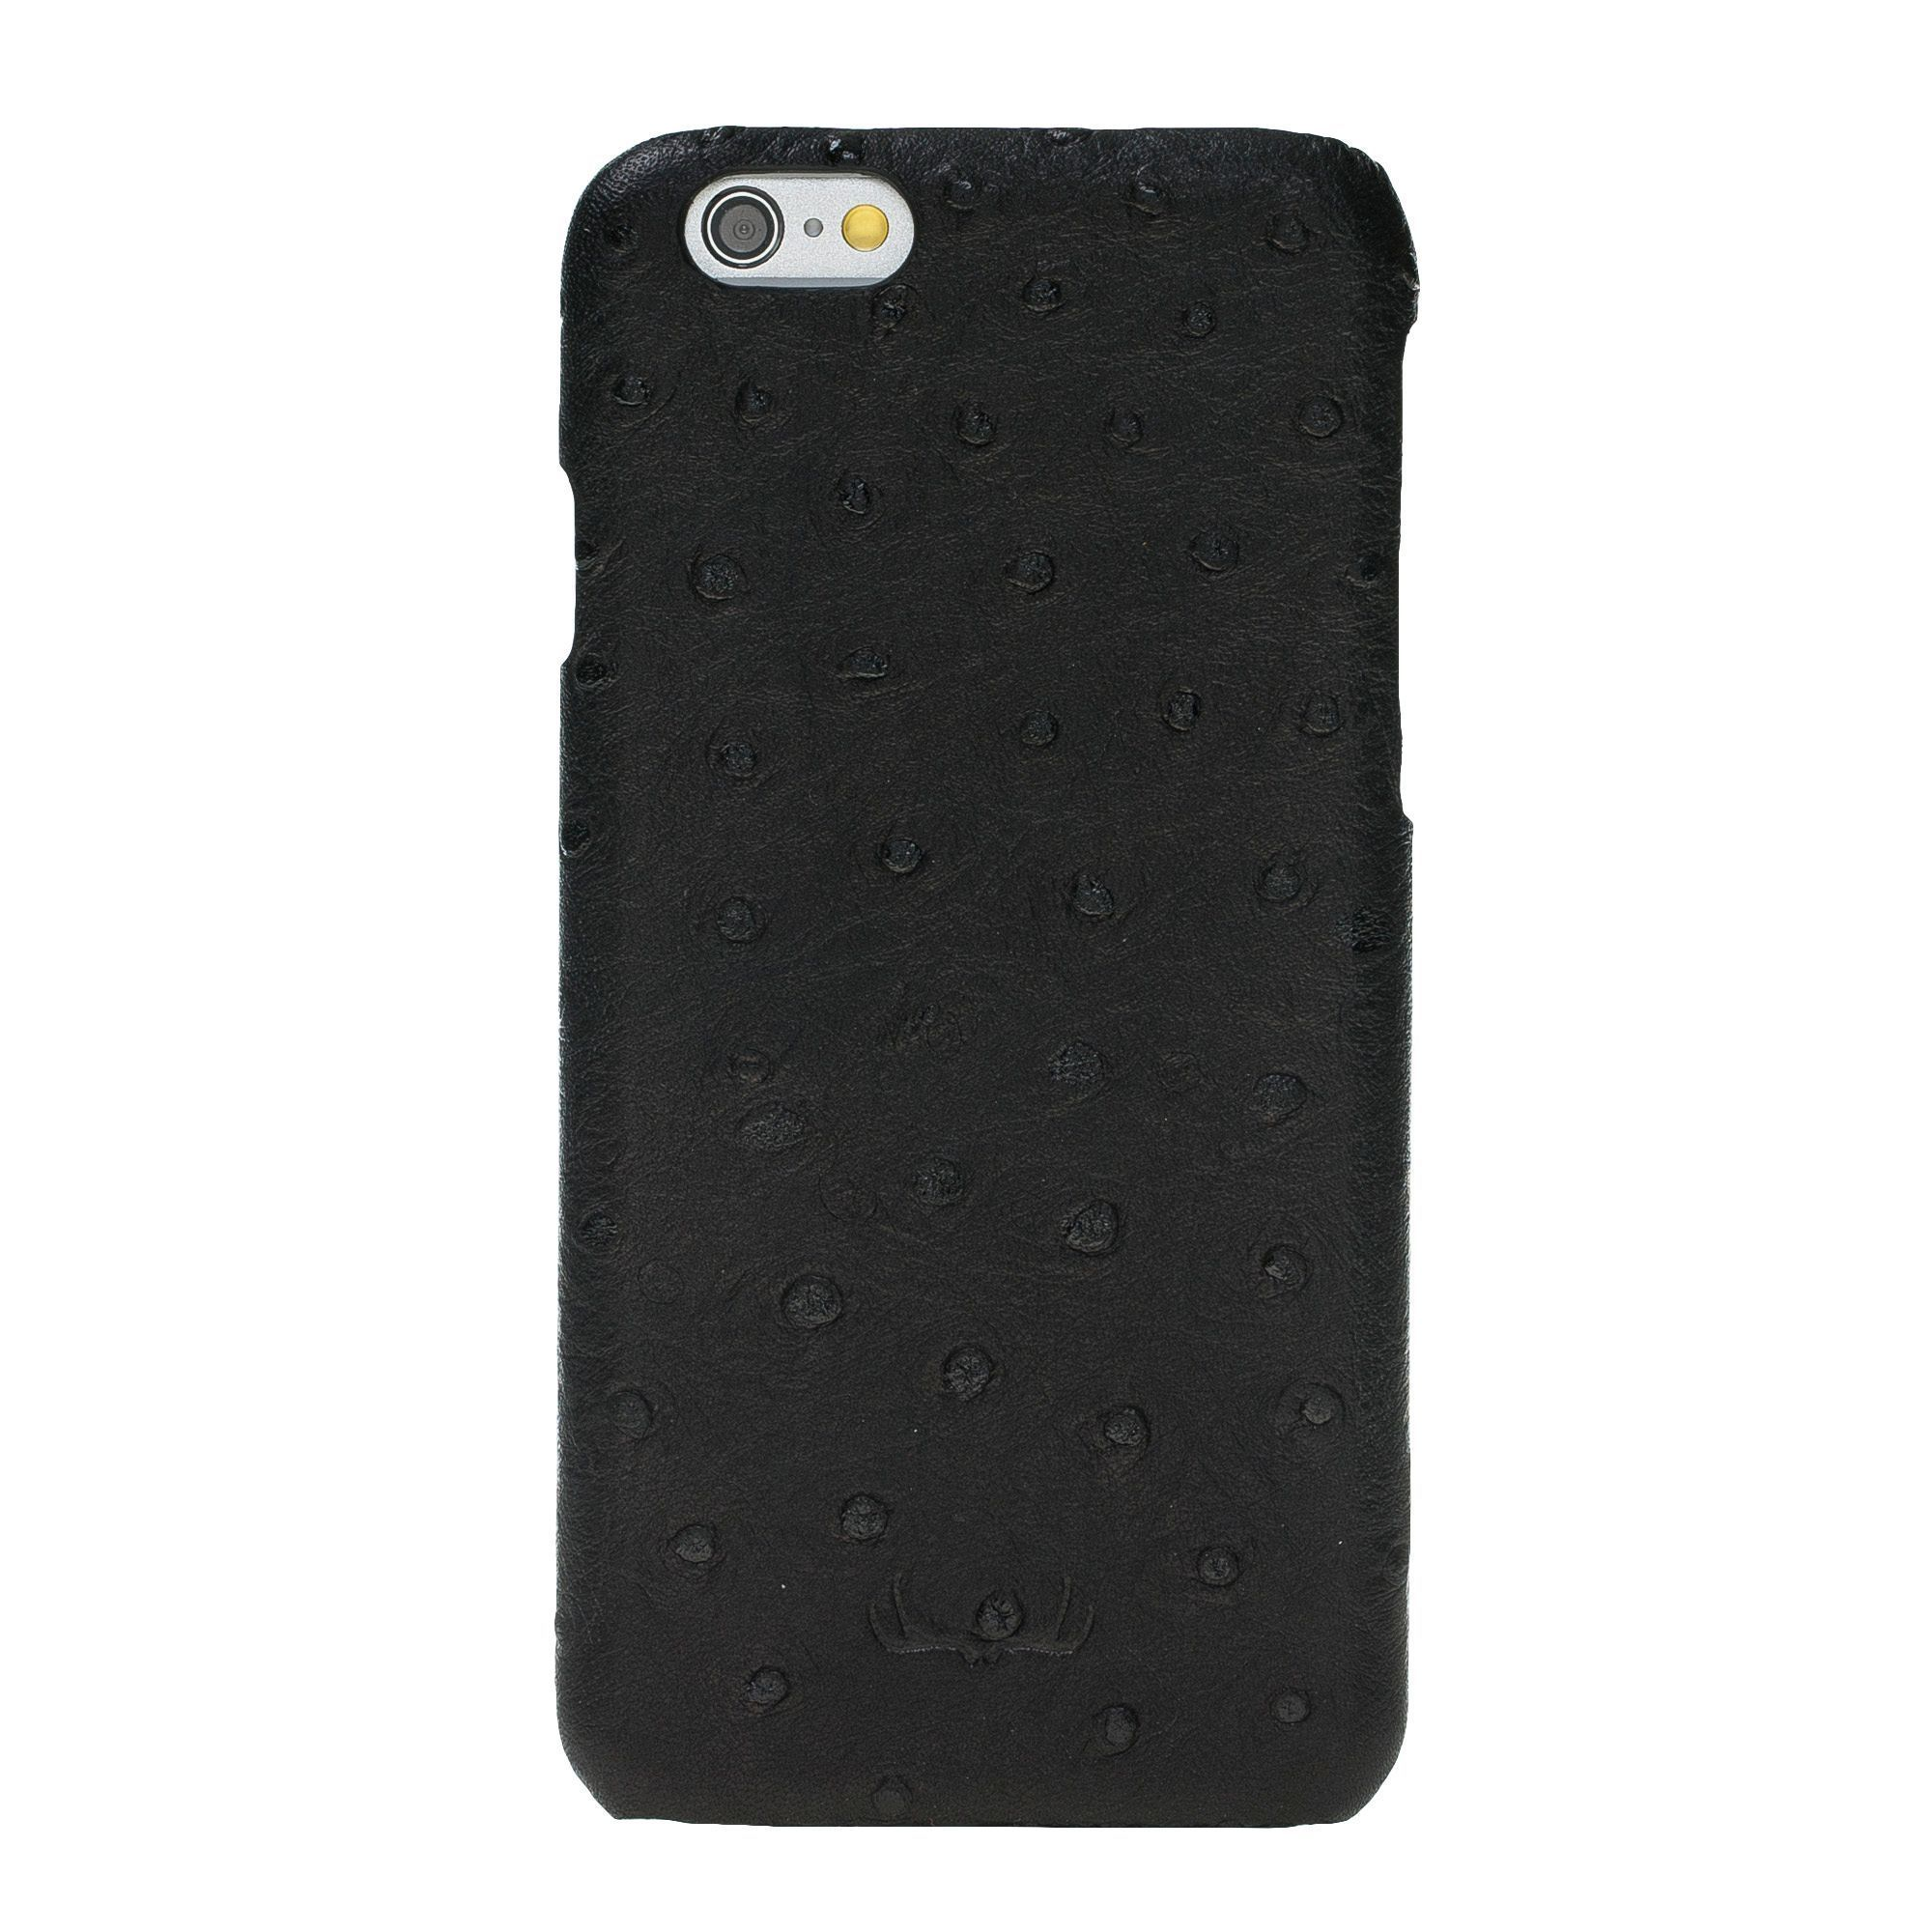 BNT Ultimate Jacket Leather Cases - Ostrich - iPhone 6/6S - Black